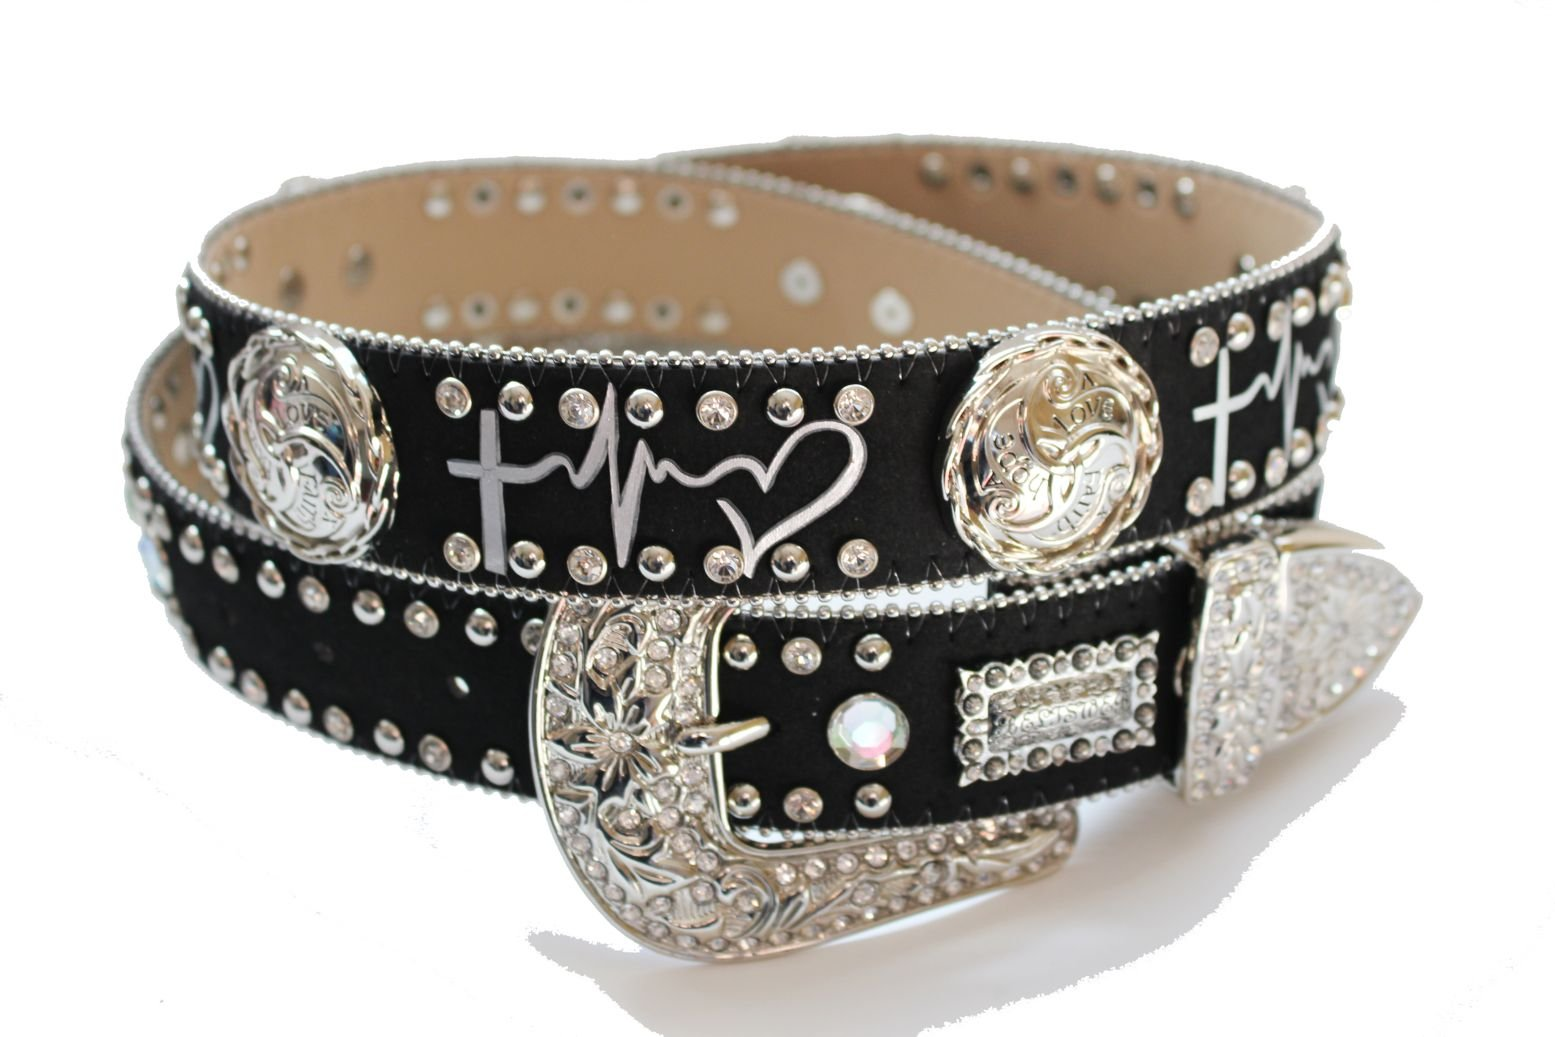 BELTSWEB 12101 Women's ''faith hope love'' Symbol Print with Concho Cowgirl Bling Belt Size 34 Black